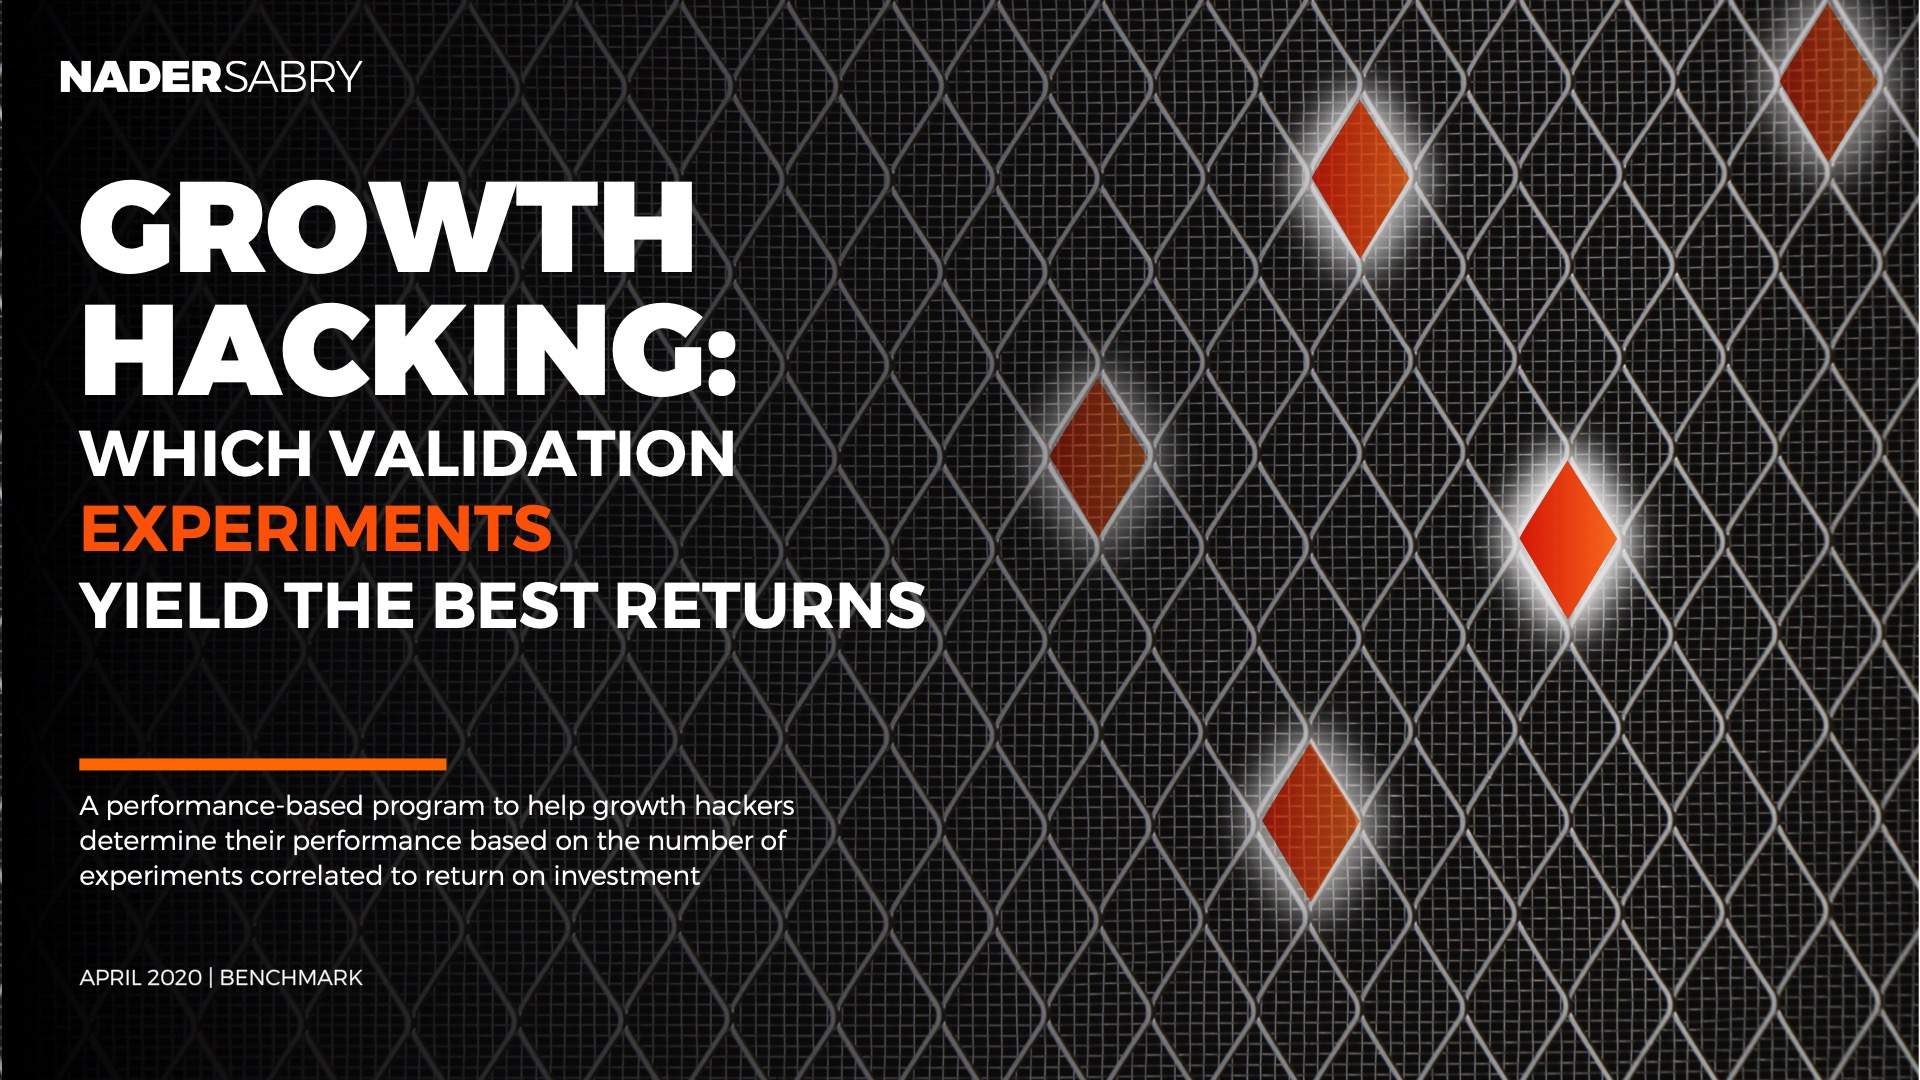 Which Validation growth hacking experiments are the most PROFITABLE